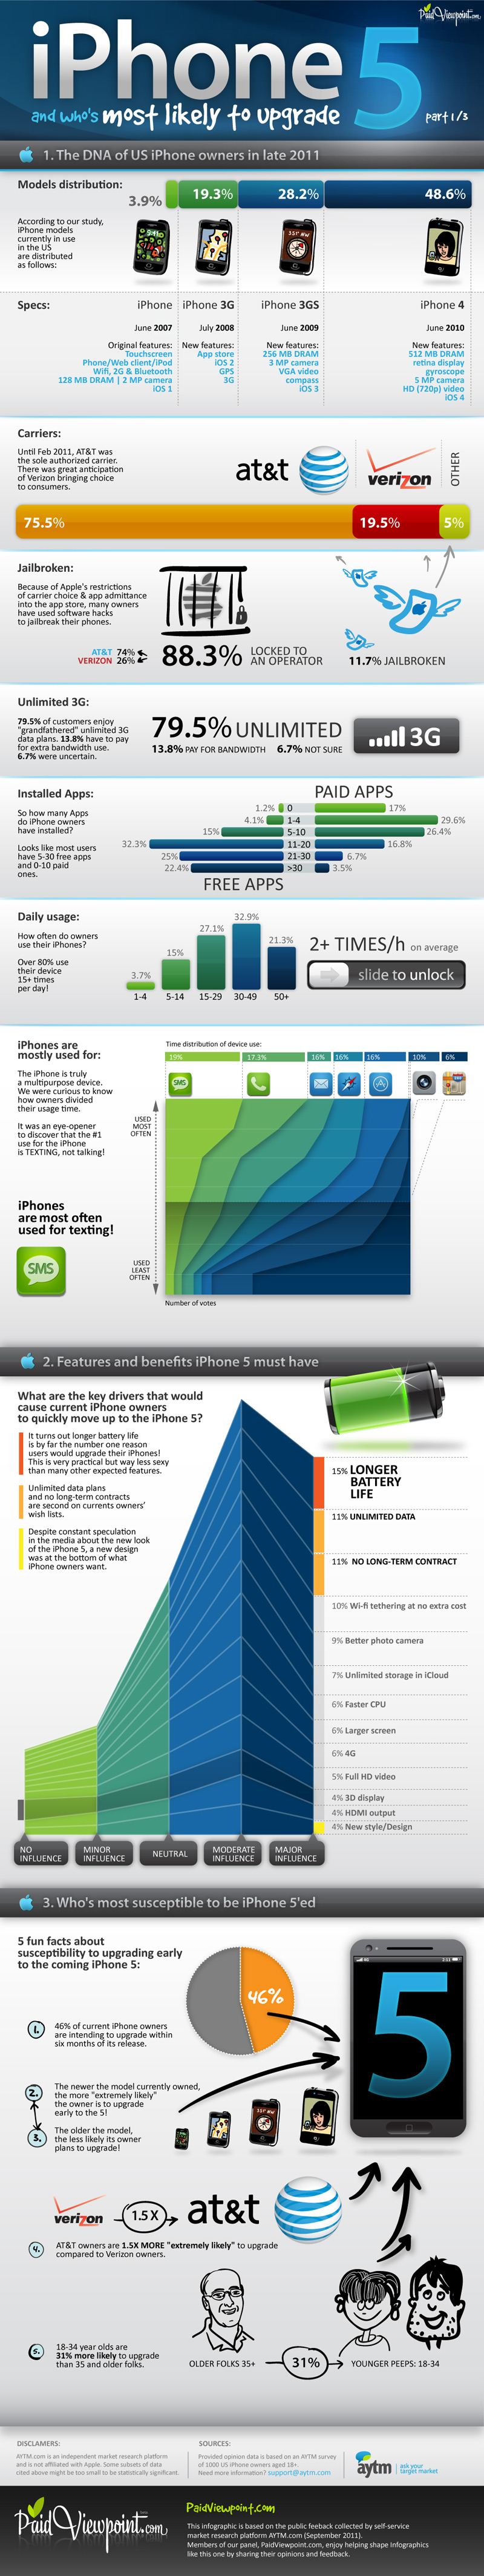 iPhone-5-infographic-part-1